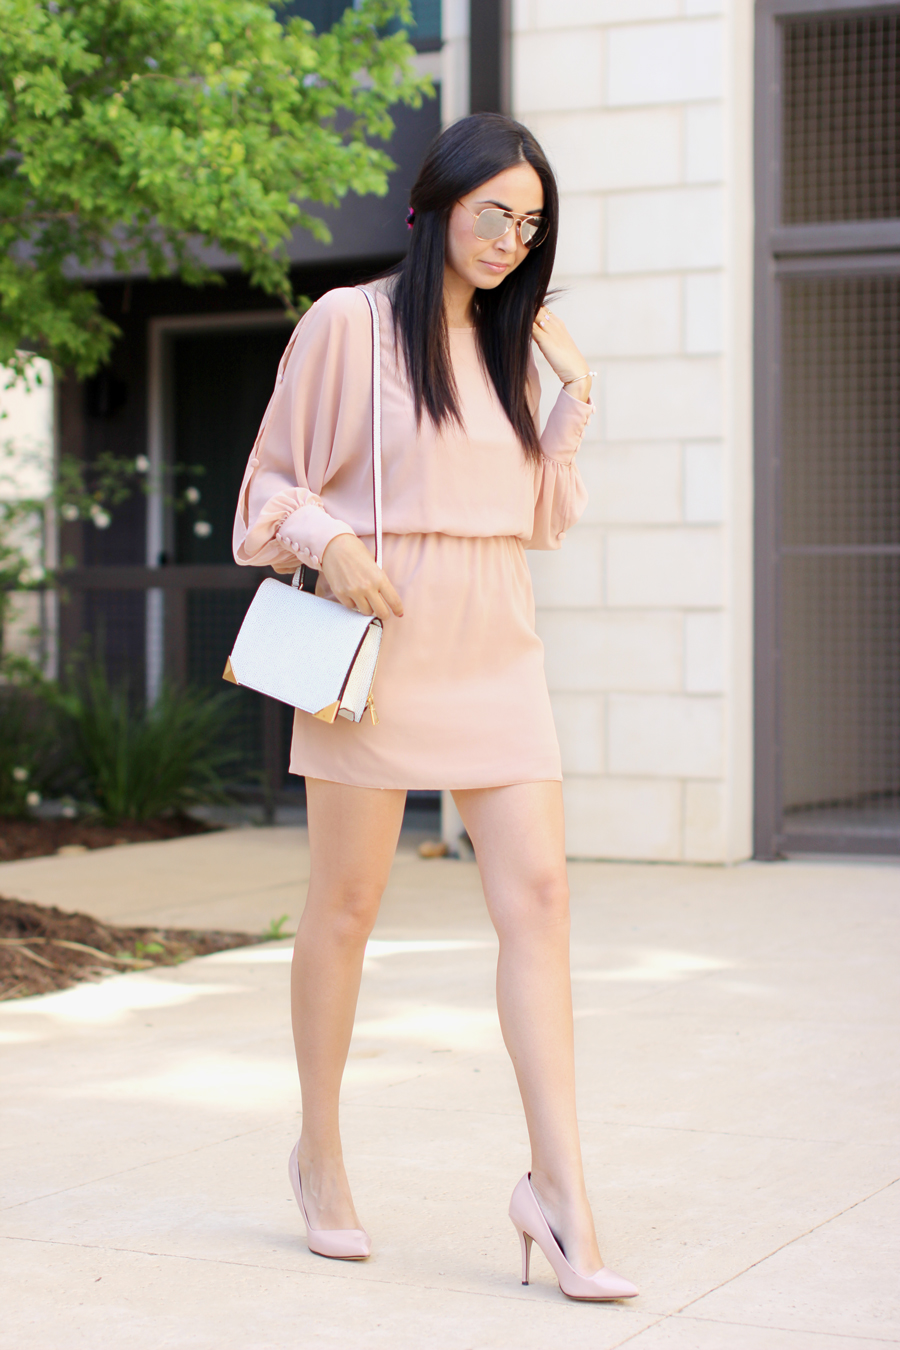 FTT-BLUSH-DRESS-NUDE-HEELS-MELIE-BIANCO-AUSTIN-FASHION-BLOGGER-7